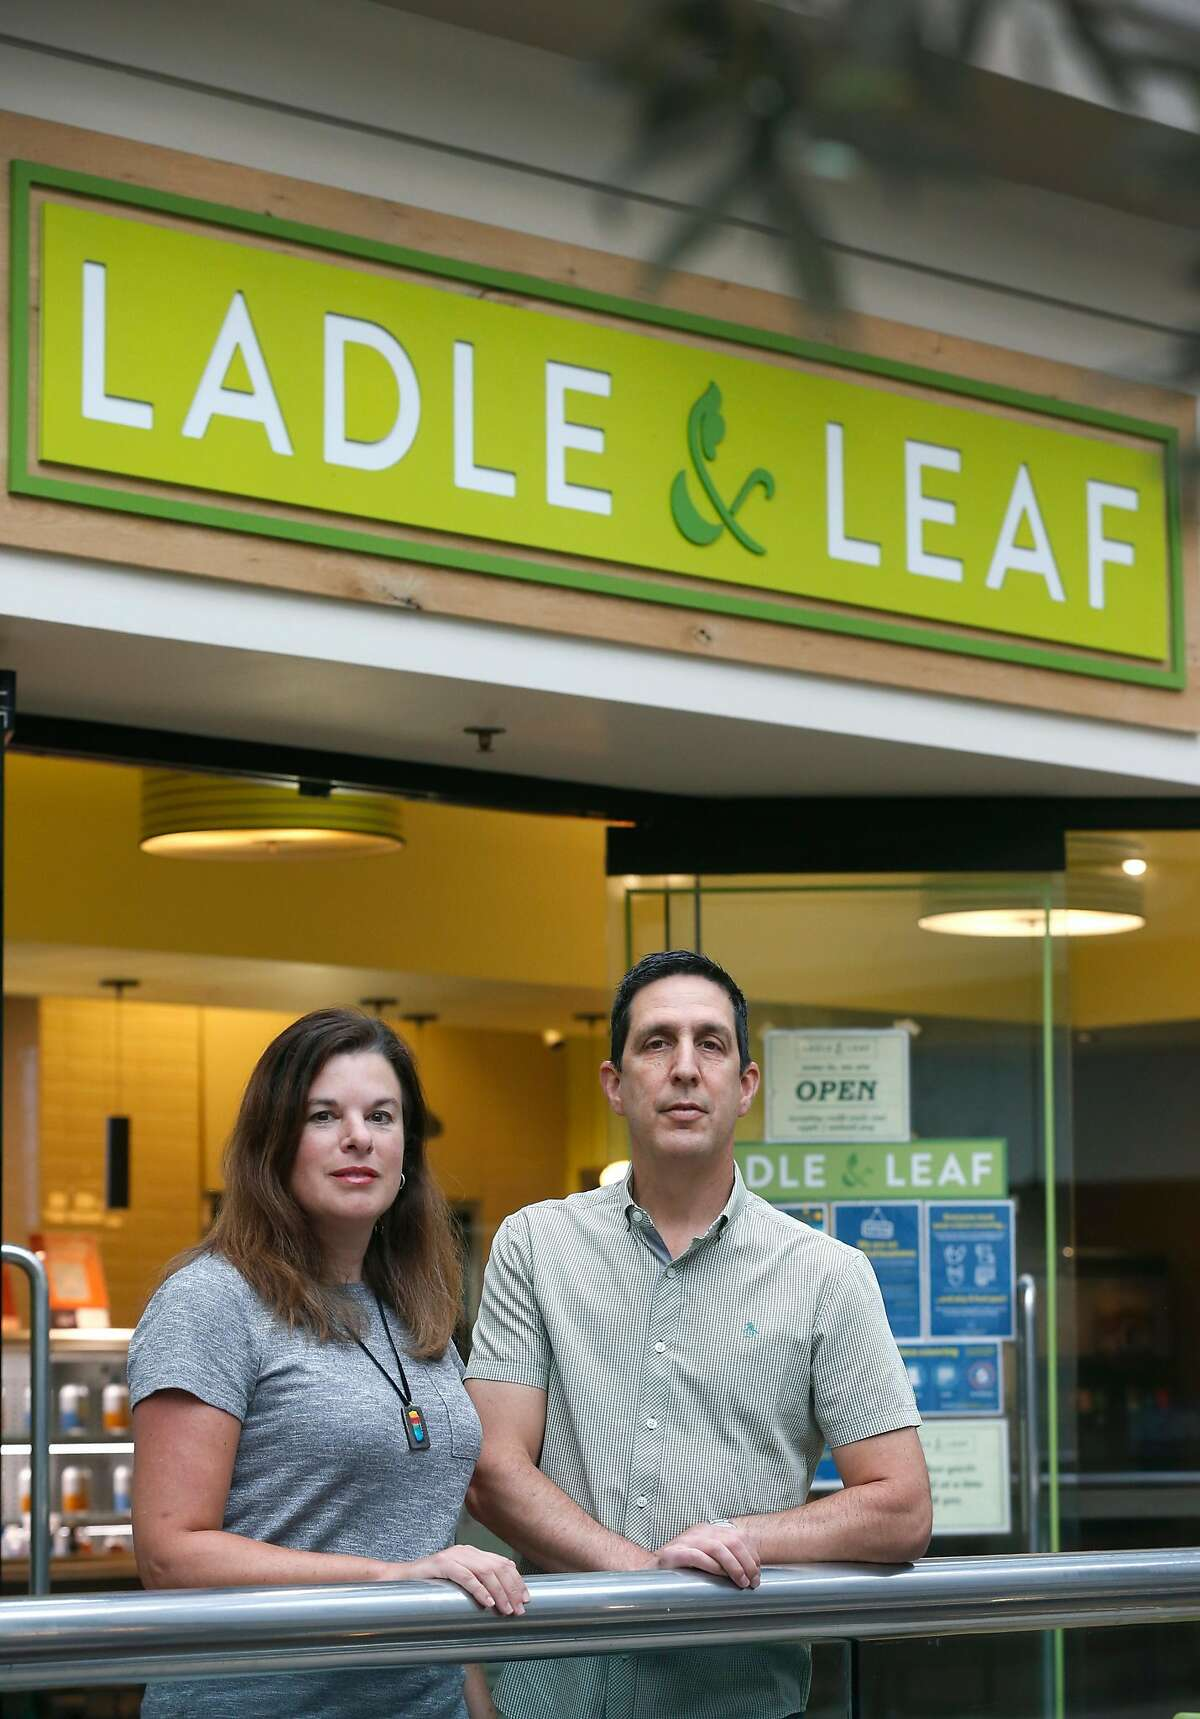 Business partners Jennifer Sarver and Steve Sarver prepare their Ladle and Leaf cafe and restaurant for lunch service in the Crocker Galleria mall in San Francisco, Calif. on Tuesday, Aug. 25, 2020. Some businesses have remained open despite few office workers and commuters populating the Financial District during the coronavirus shutdown.